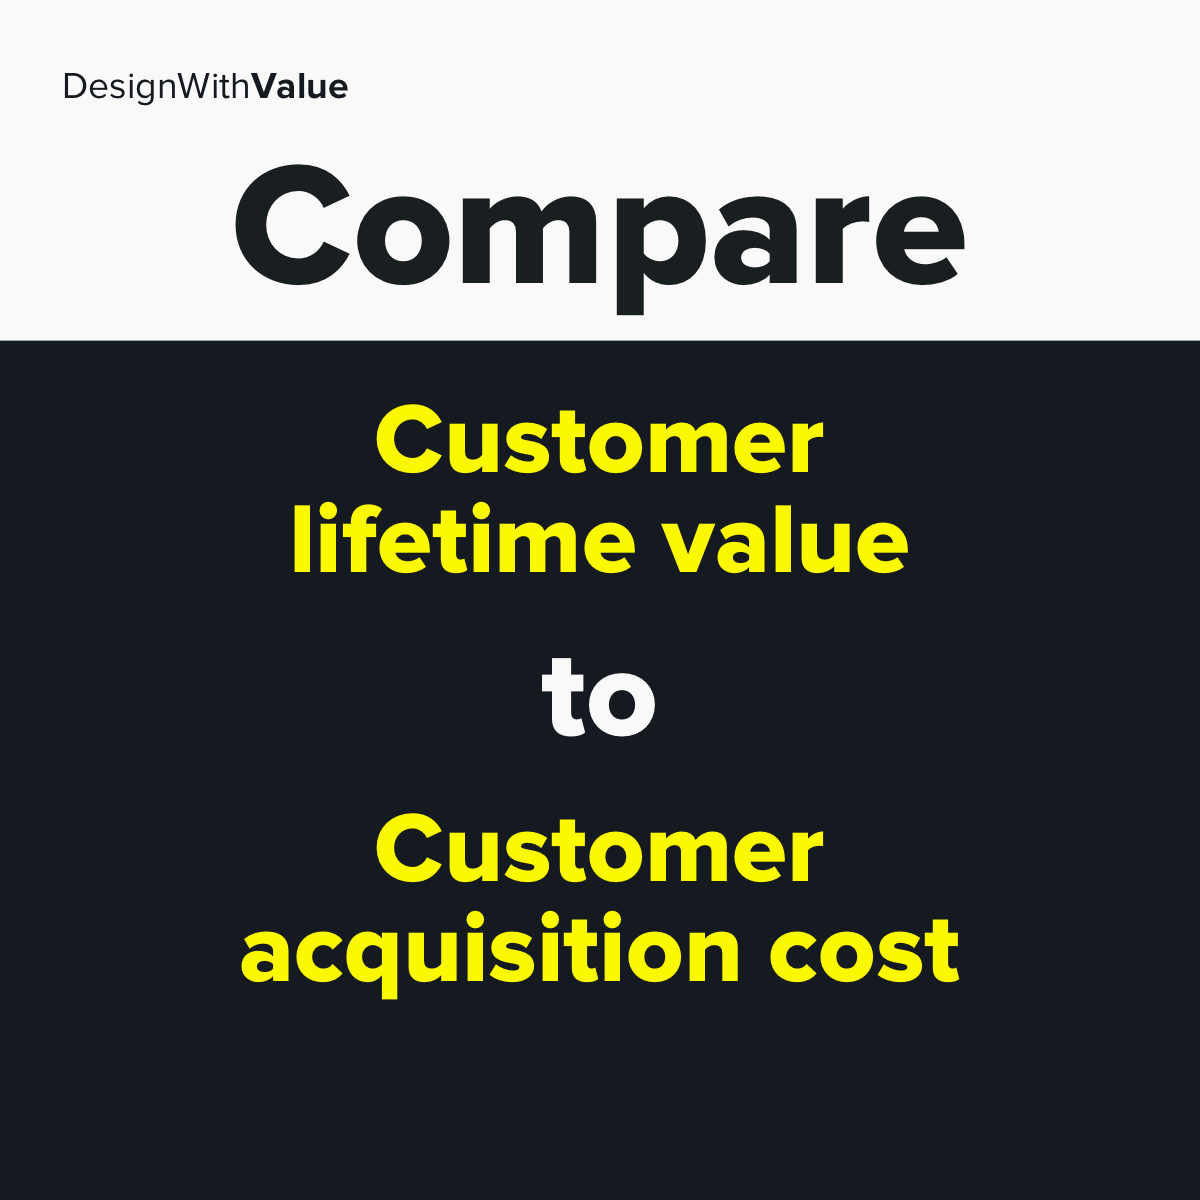 Compare customer lifetime value to customer acquisition cost.